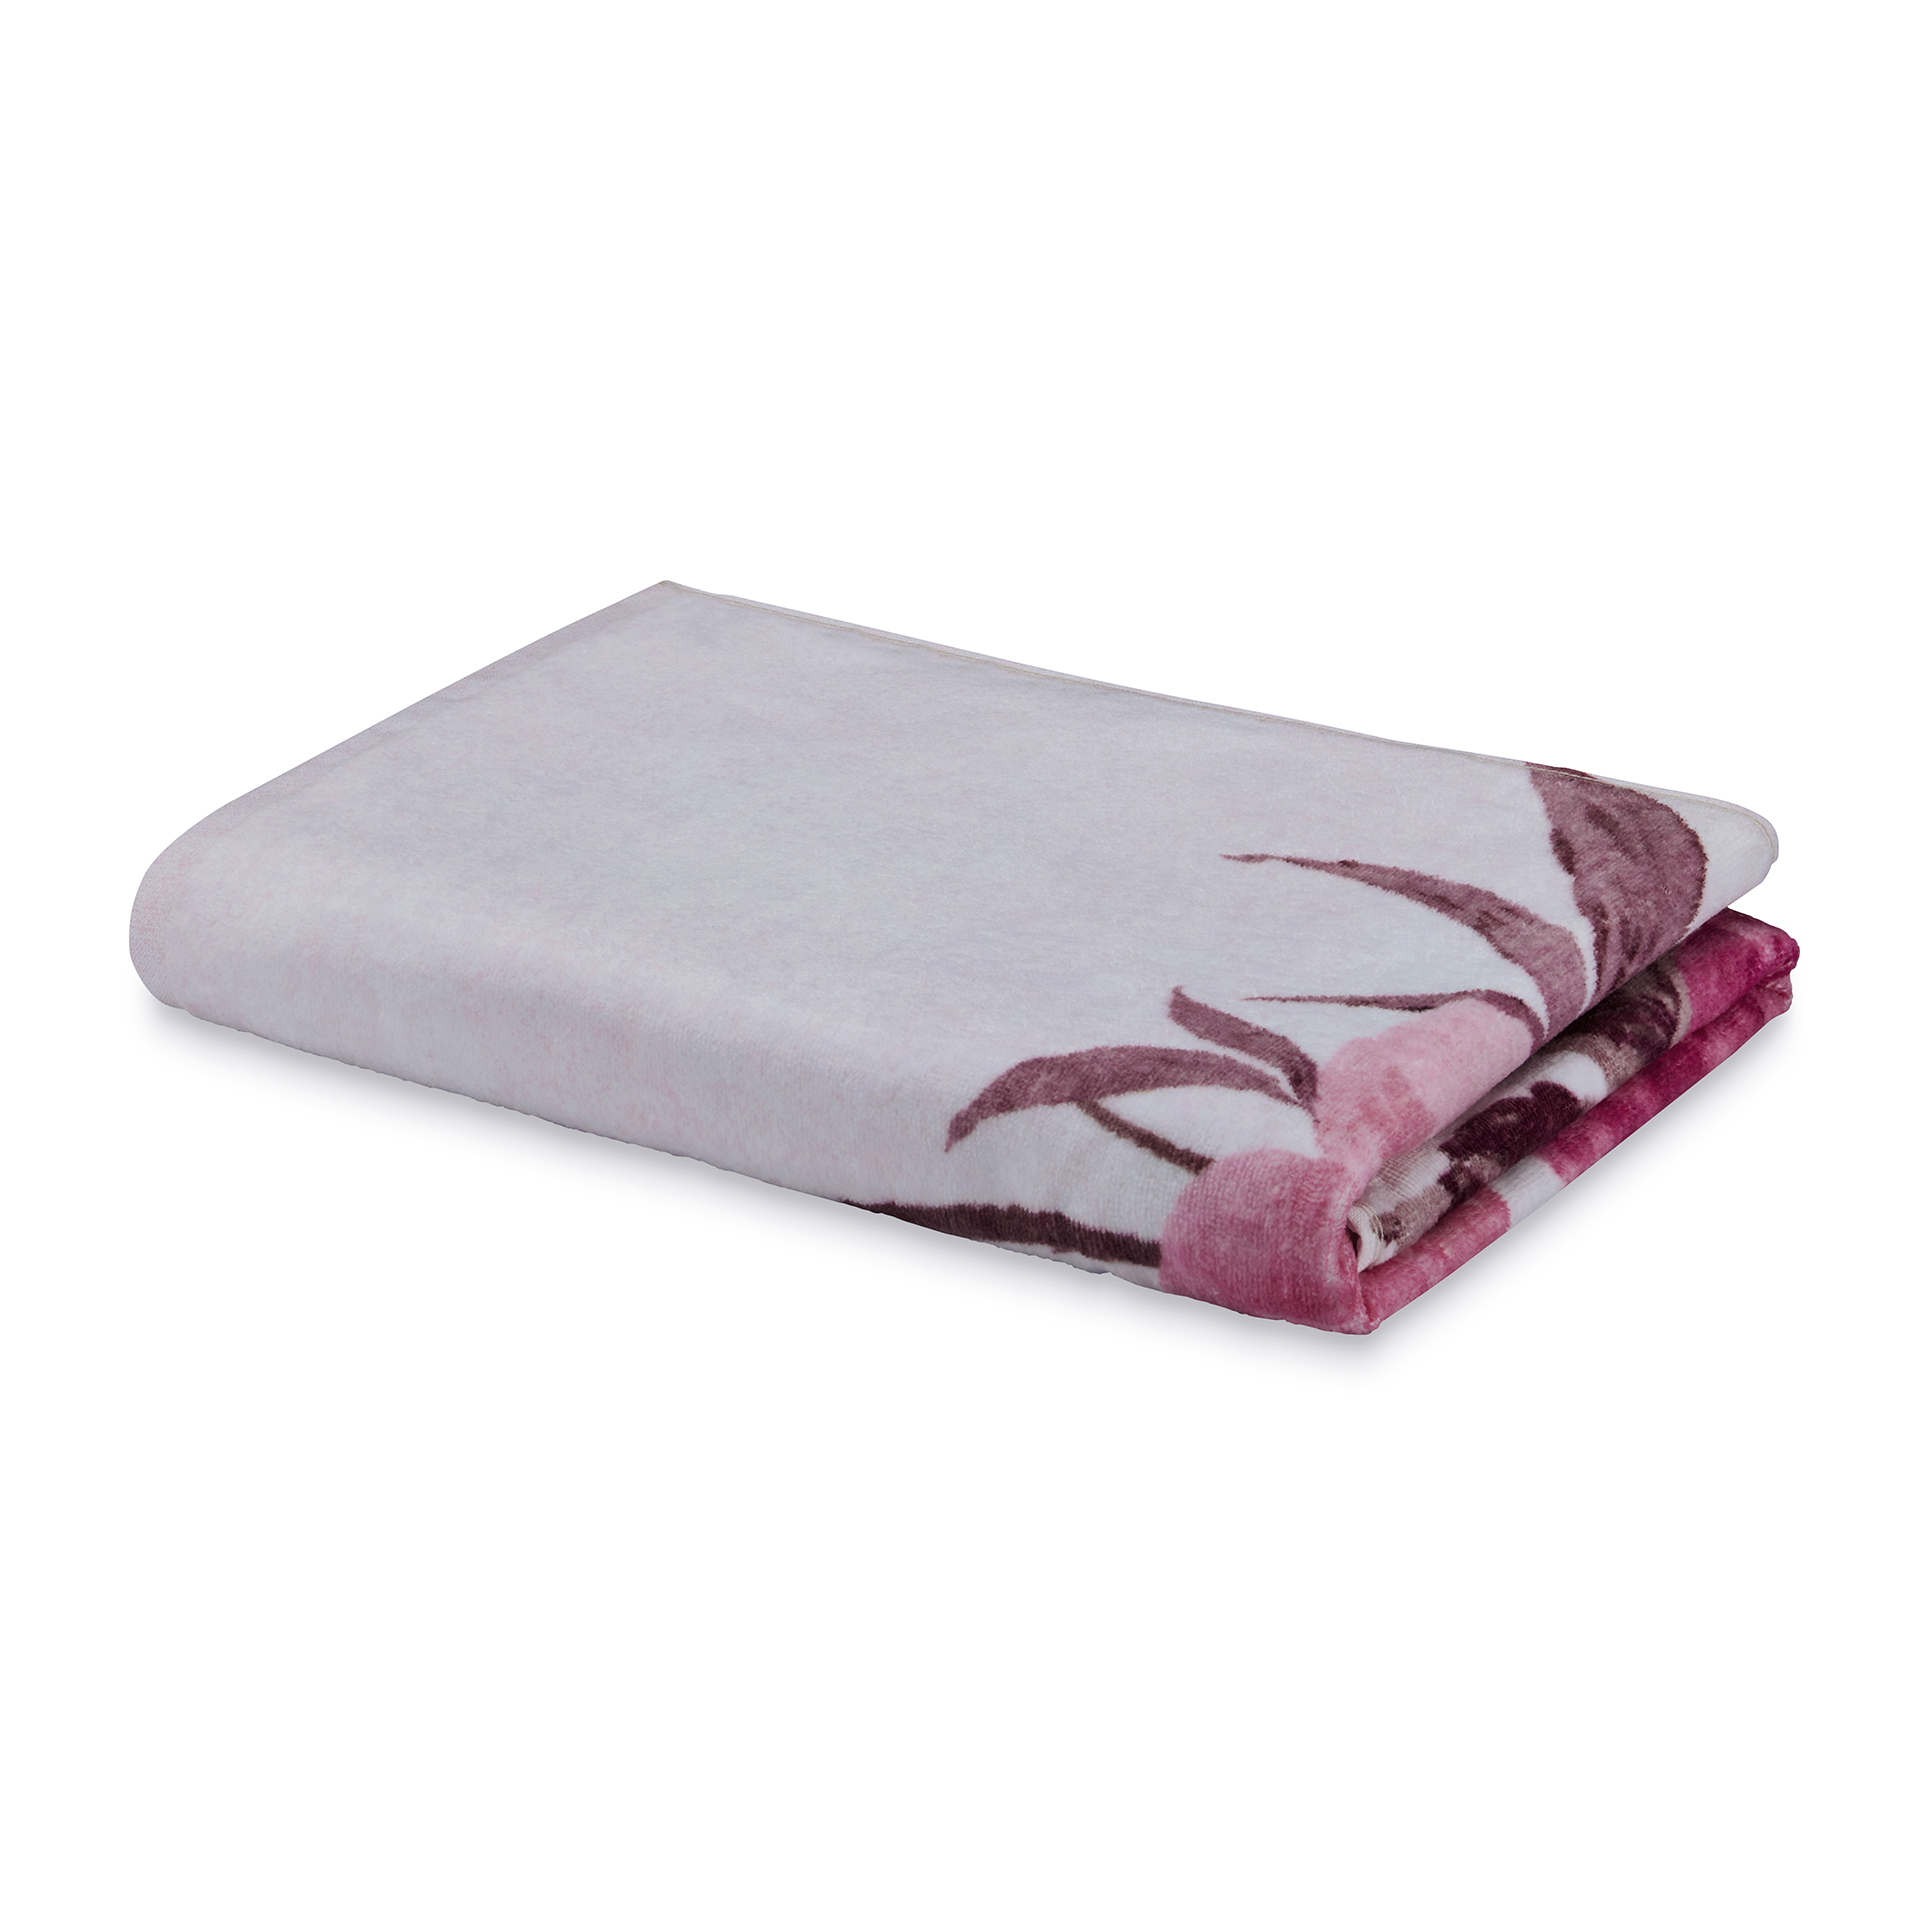 Spaces Atrium Cotton Double Bed Sheets in Pink Colour by Spaces